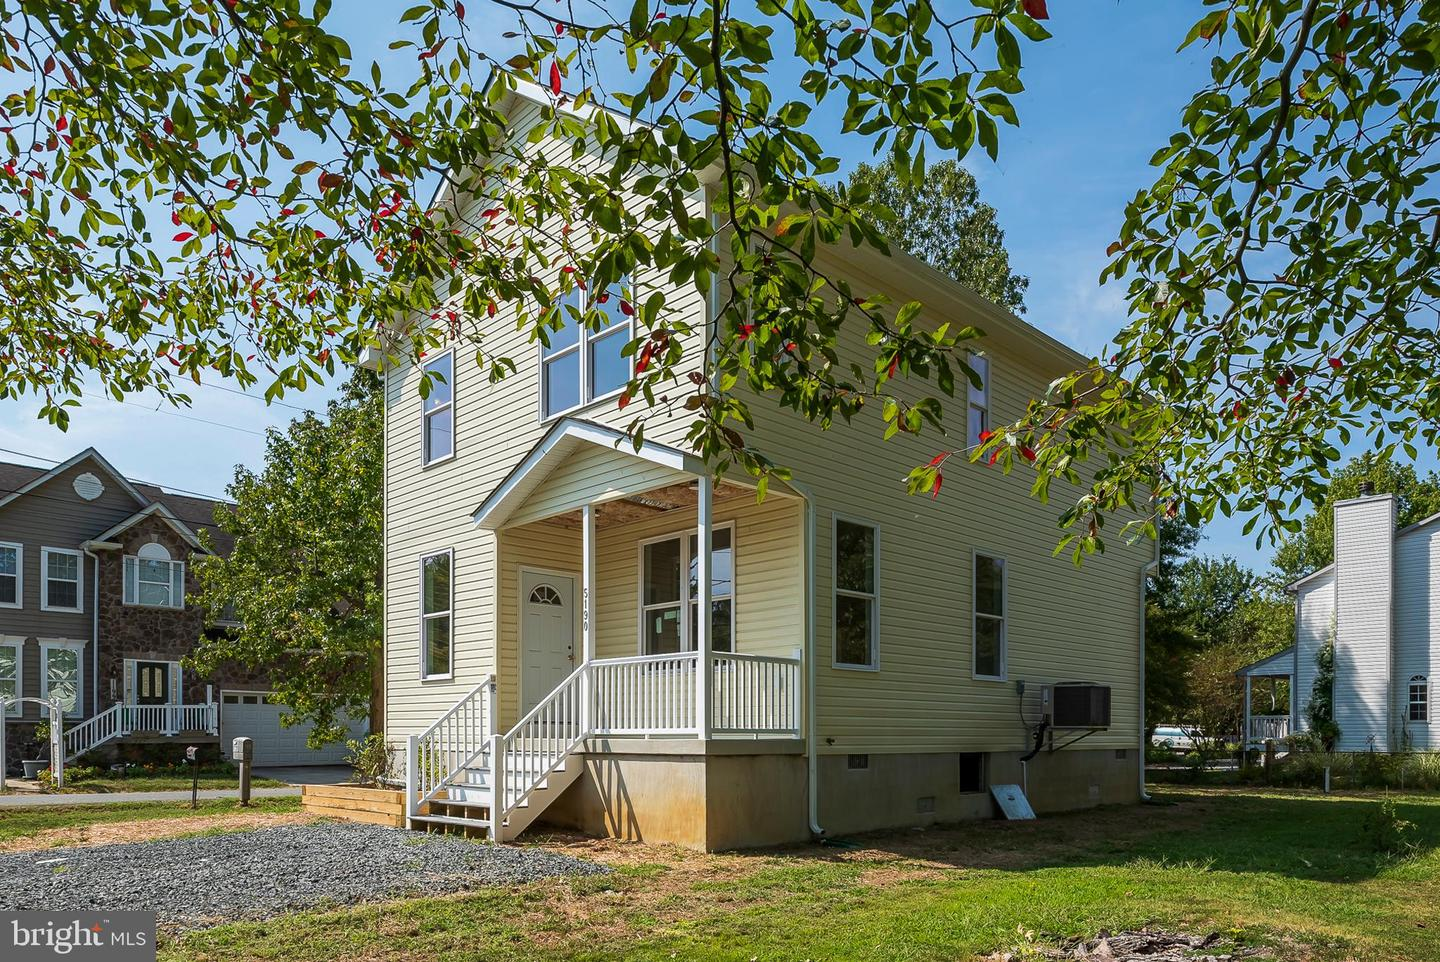 5190 Spring Ave Shady Side, MD 20764 on crawl space home plans, lighthouse home plans, roof home plans, pole home plans, daylight basement home plans, storage building home plans, poured concrete home plans, boathouse home plans, porch home plans, beam home plans, island basement home plans, schoolhouse home plans, piling foundation home plans, hangar home plans, pedestal home plans, shore home plans, walkout basement home plans, loggia home plans, keystone home plans,